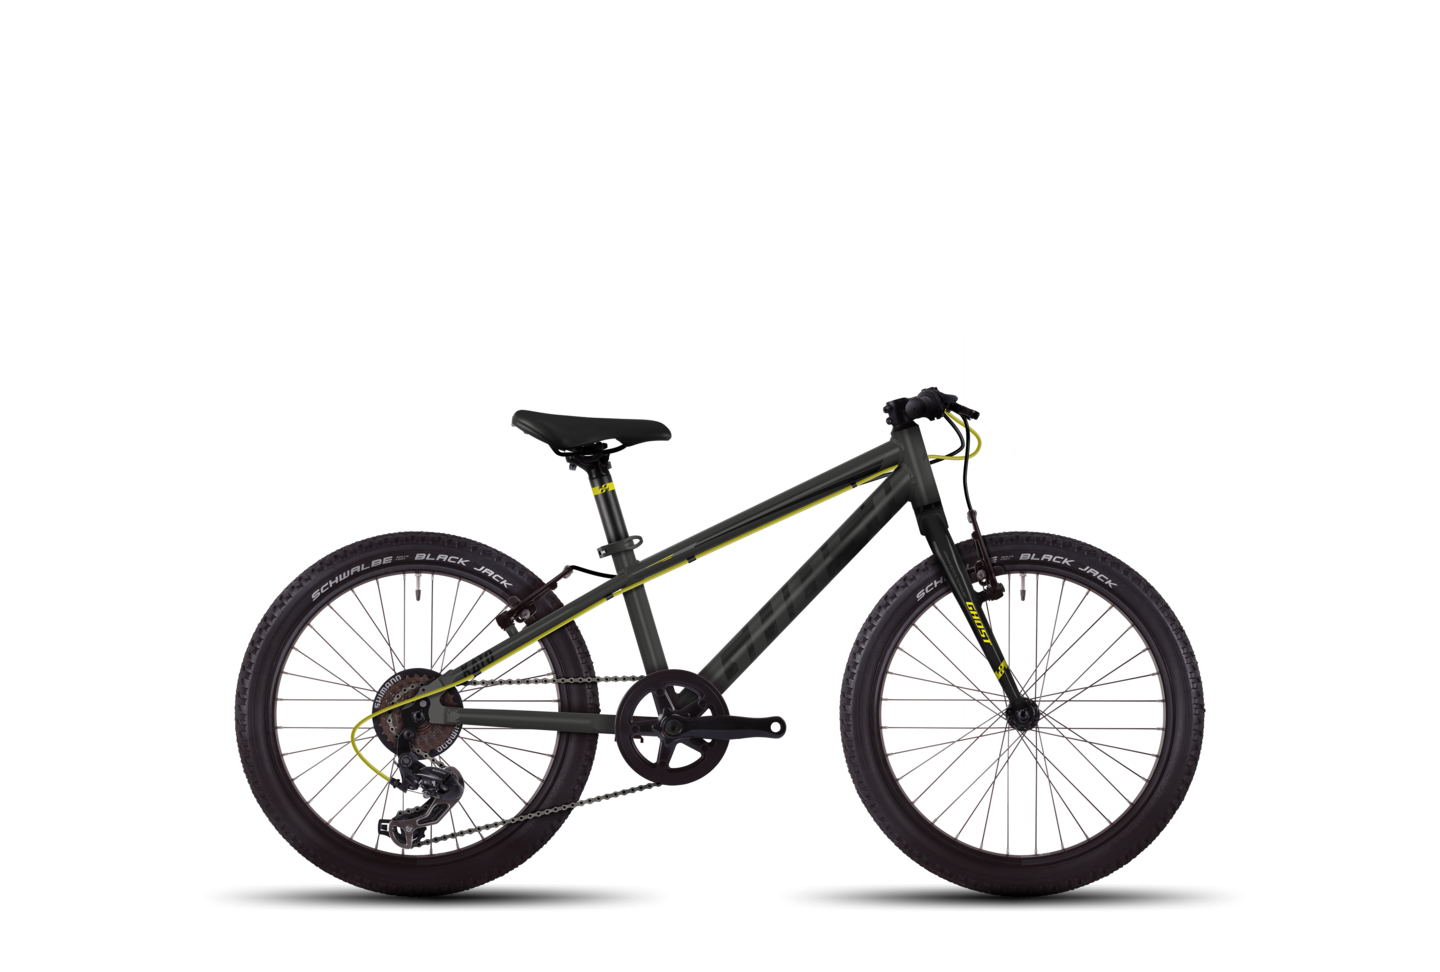 Kato Kid 1 AL 20 Mountainbike MTB / Fahrrad Hardtail GHOST